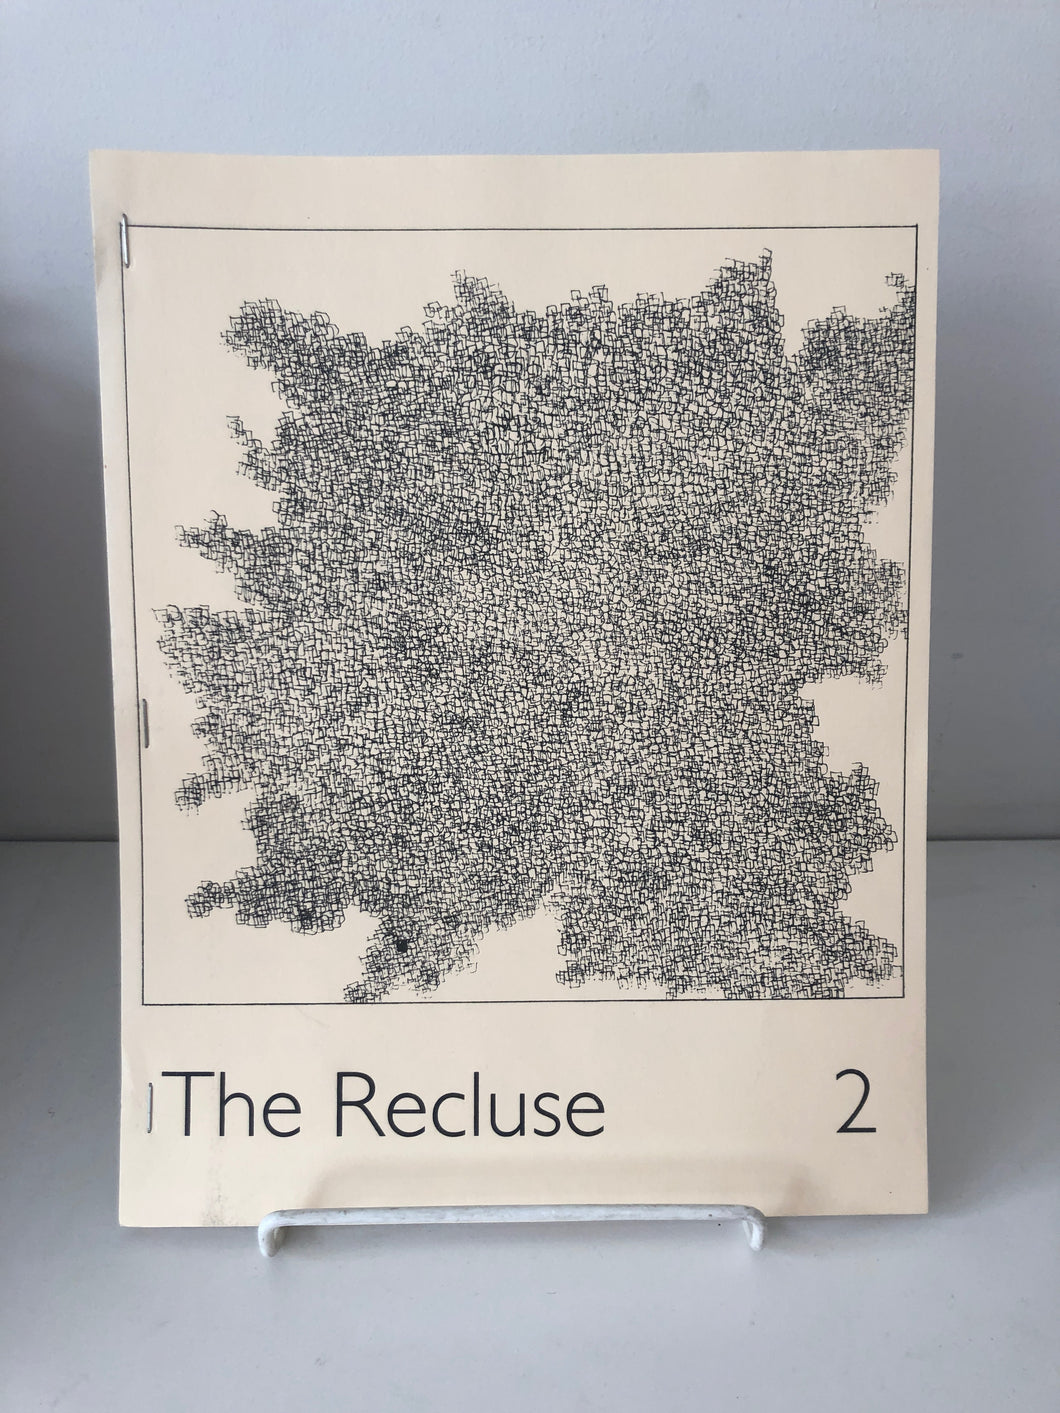 The Recluse #2